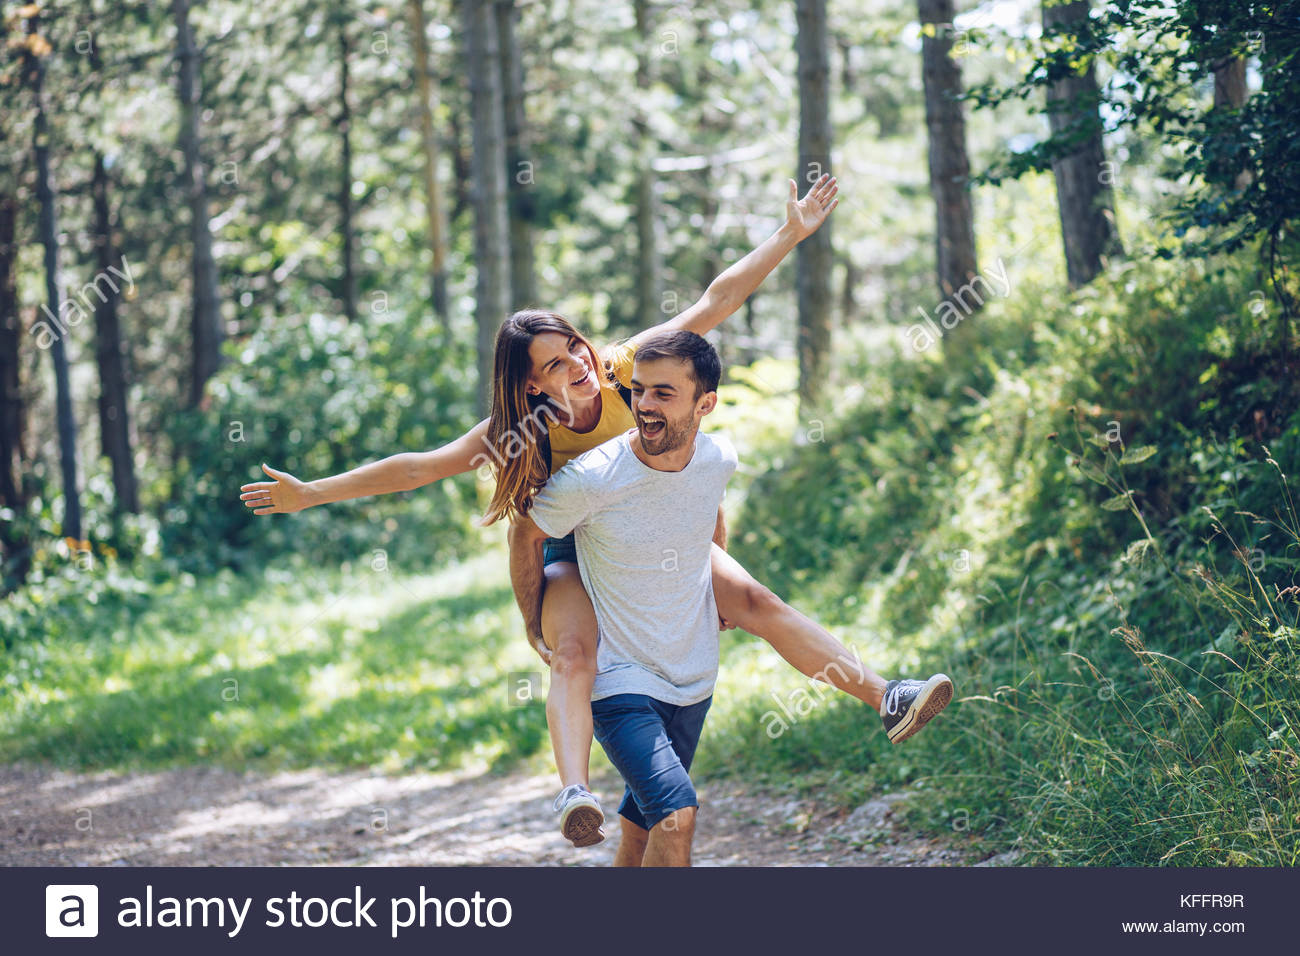 Man carrying woman piggyback Photo Stock